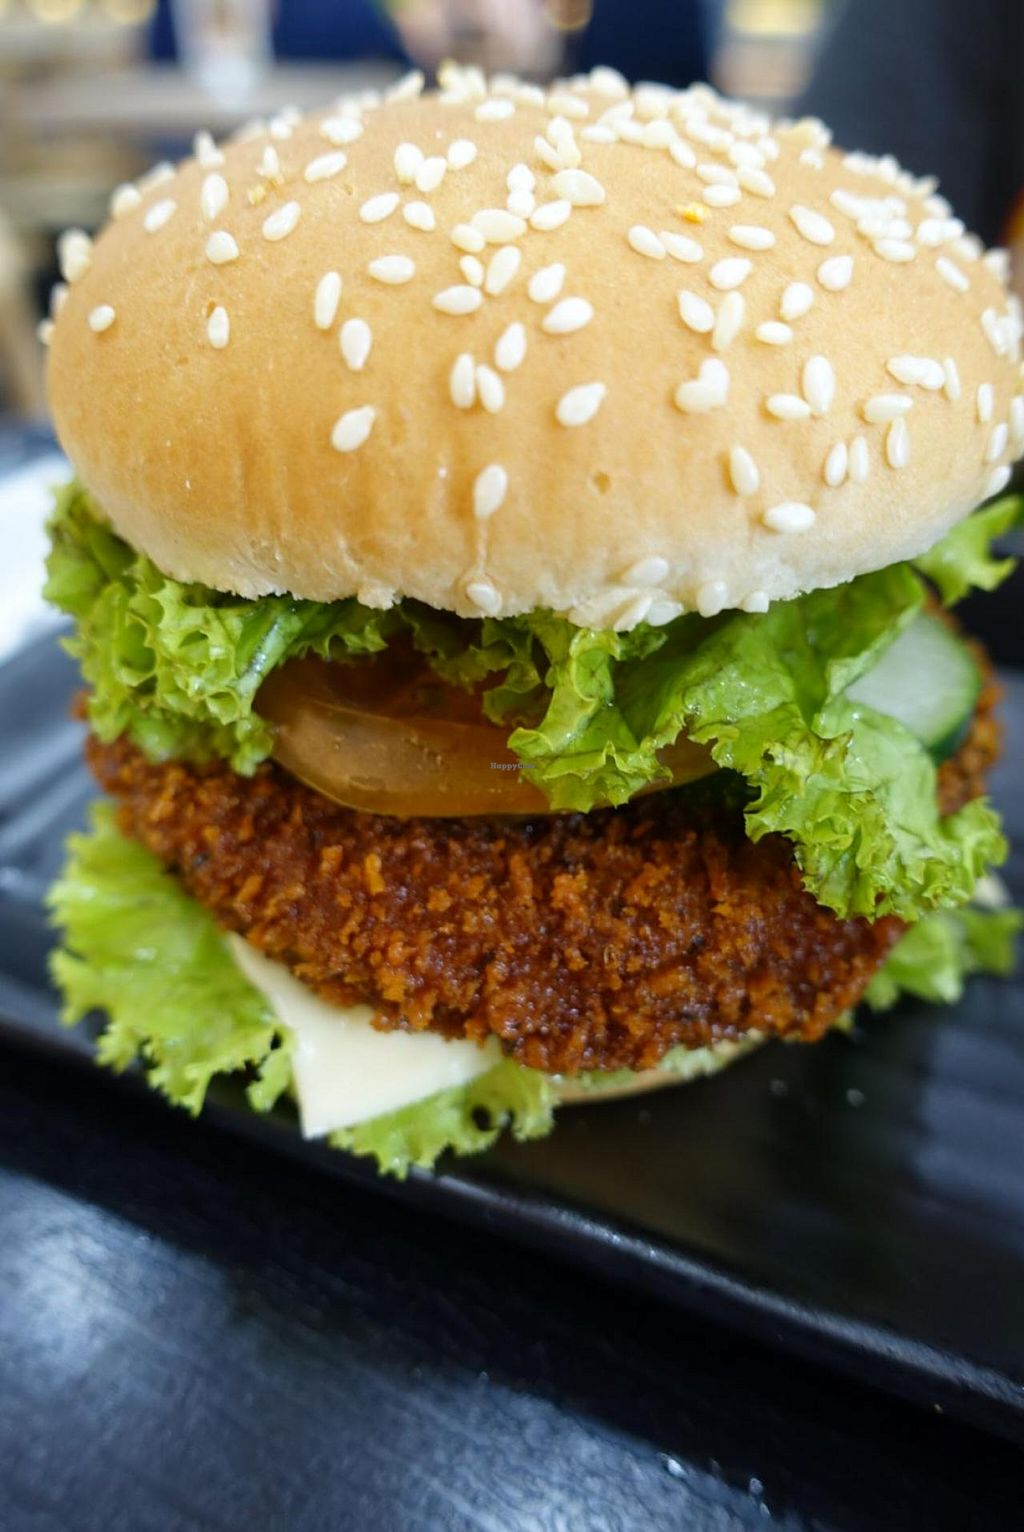 """Photo of Green Dot - Paya Lebar  by <a href=""""/members/profile/JimmySeah"""">JimmySeah</a> <br/>lion mane mushroom burger is another chef's recommendation. great!  <br/> January 11, 2015  - <a href='/contact/abuse/image/54149/90071'>Report</a>"""